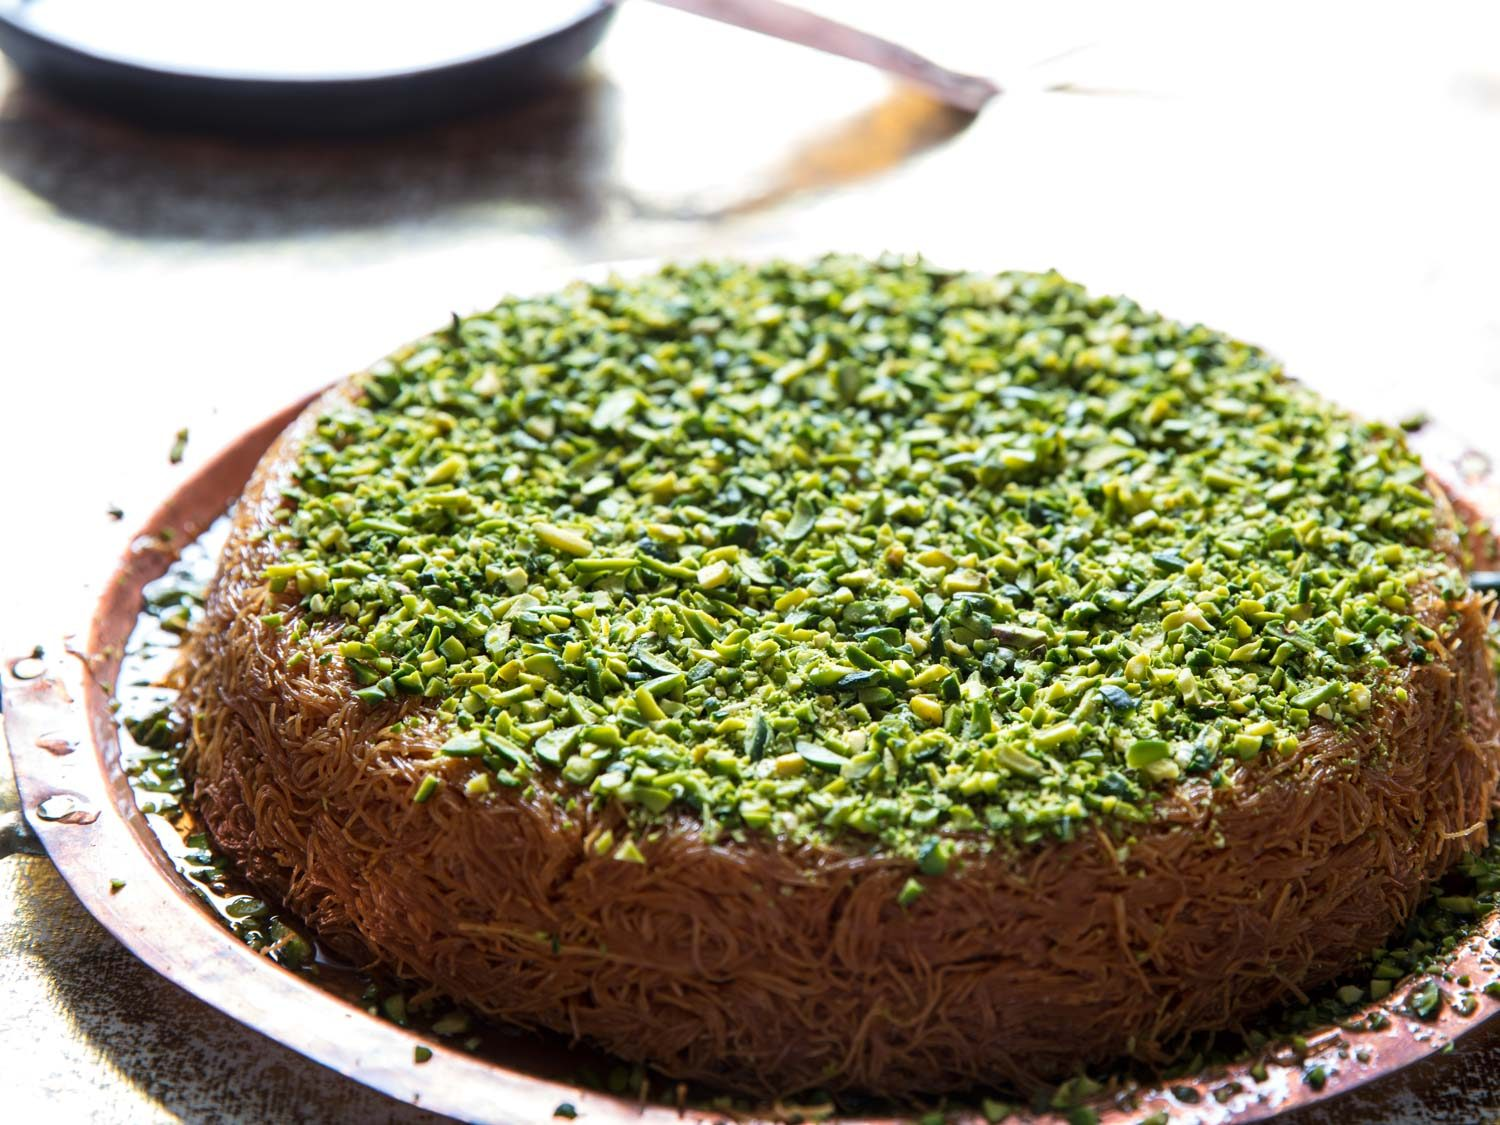 Kanafeh (Middle Eastern Cheese and Phyllo Dessert)